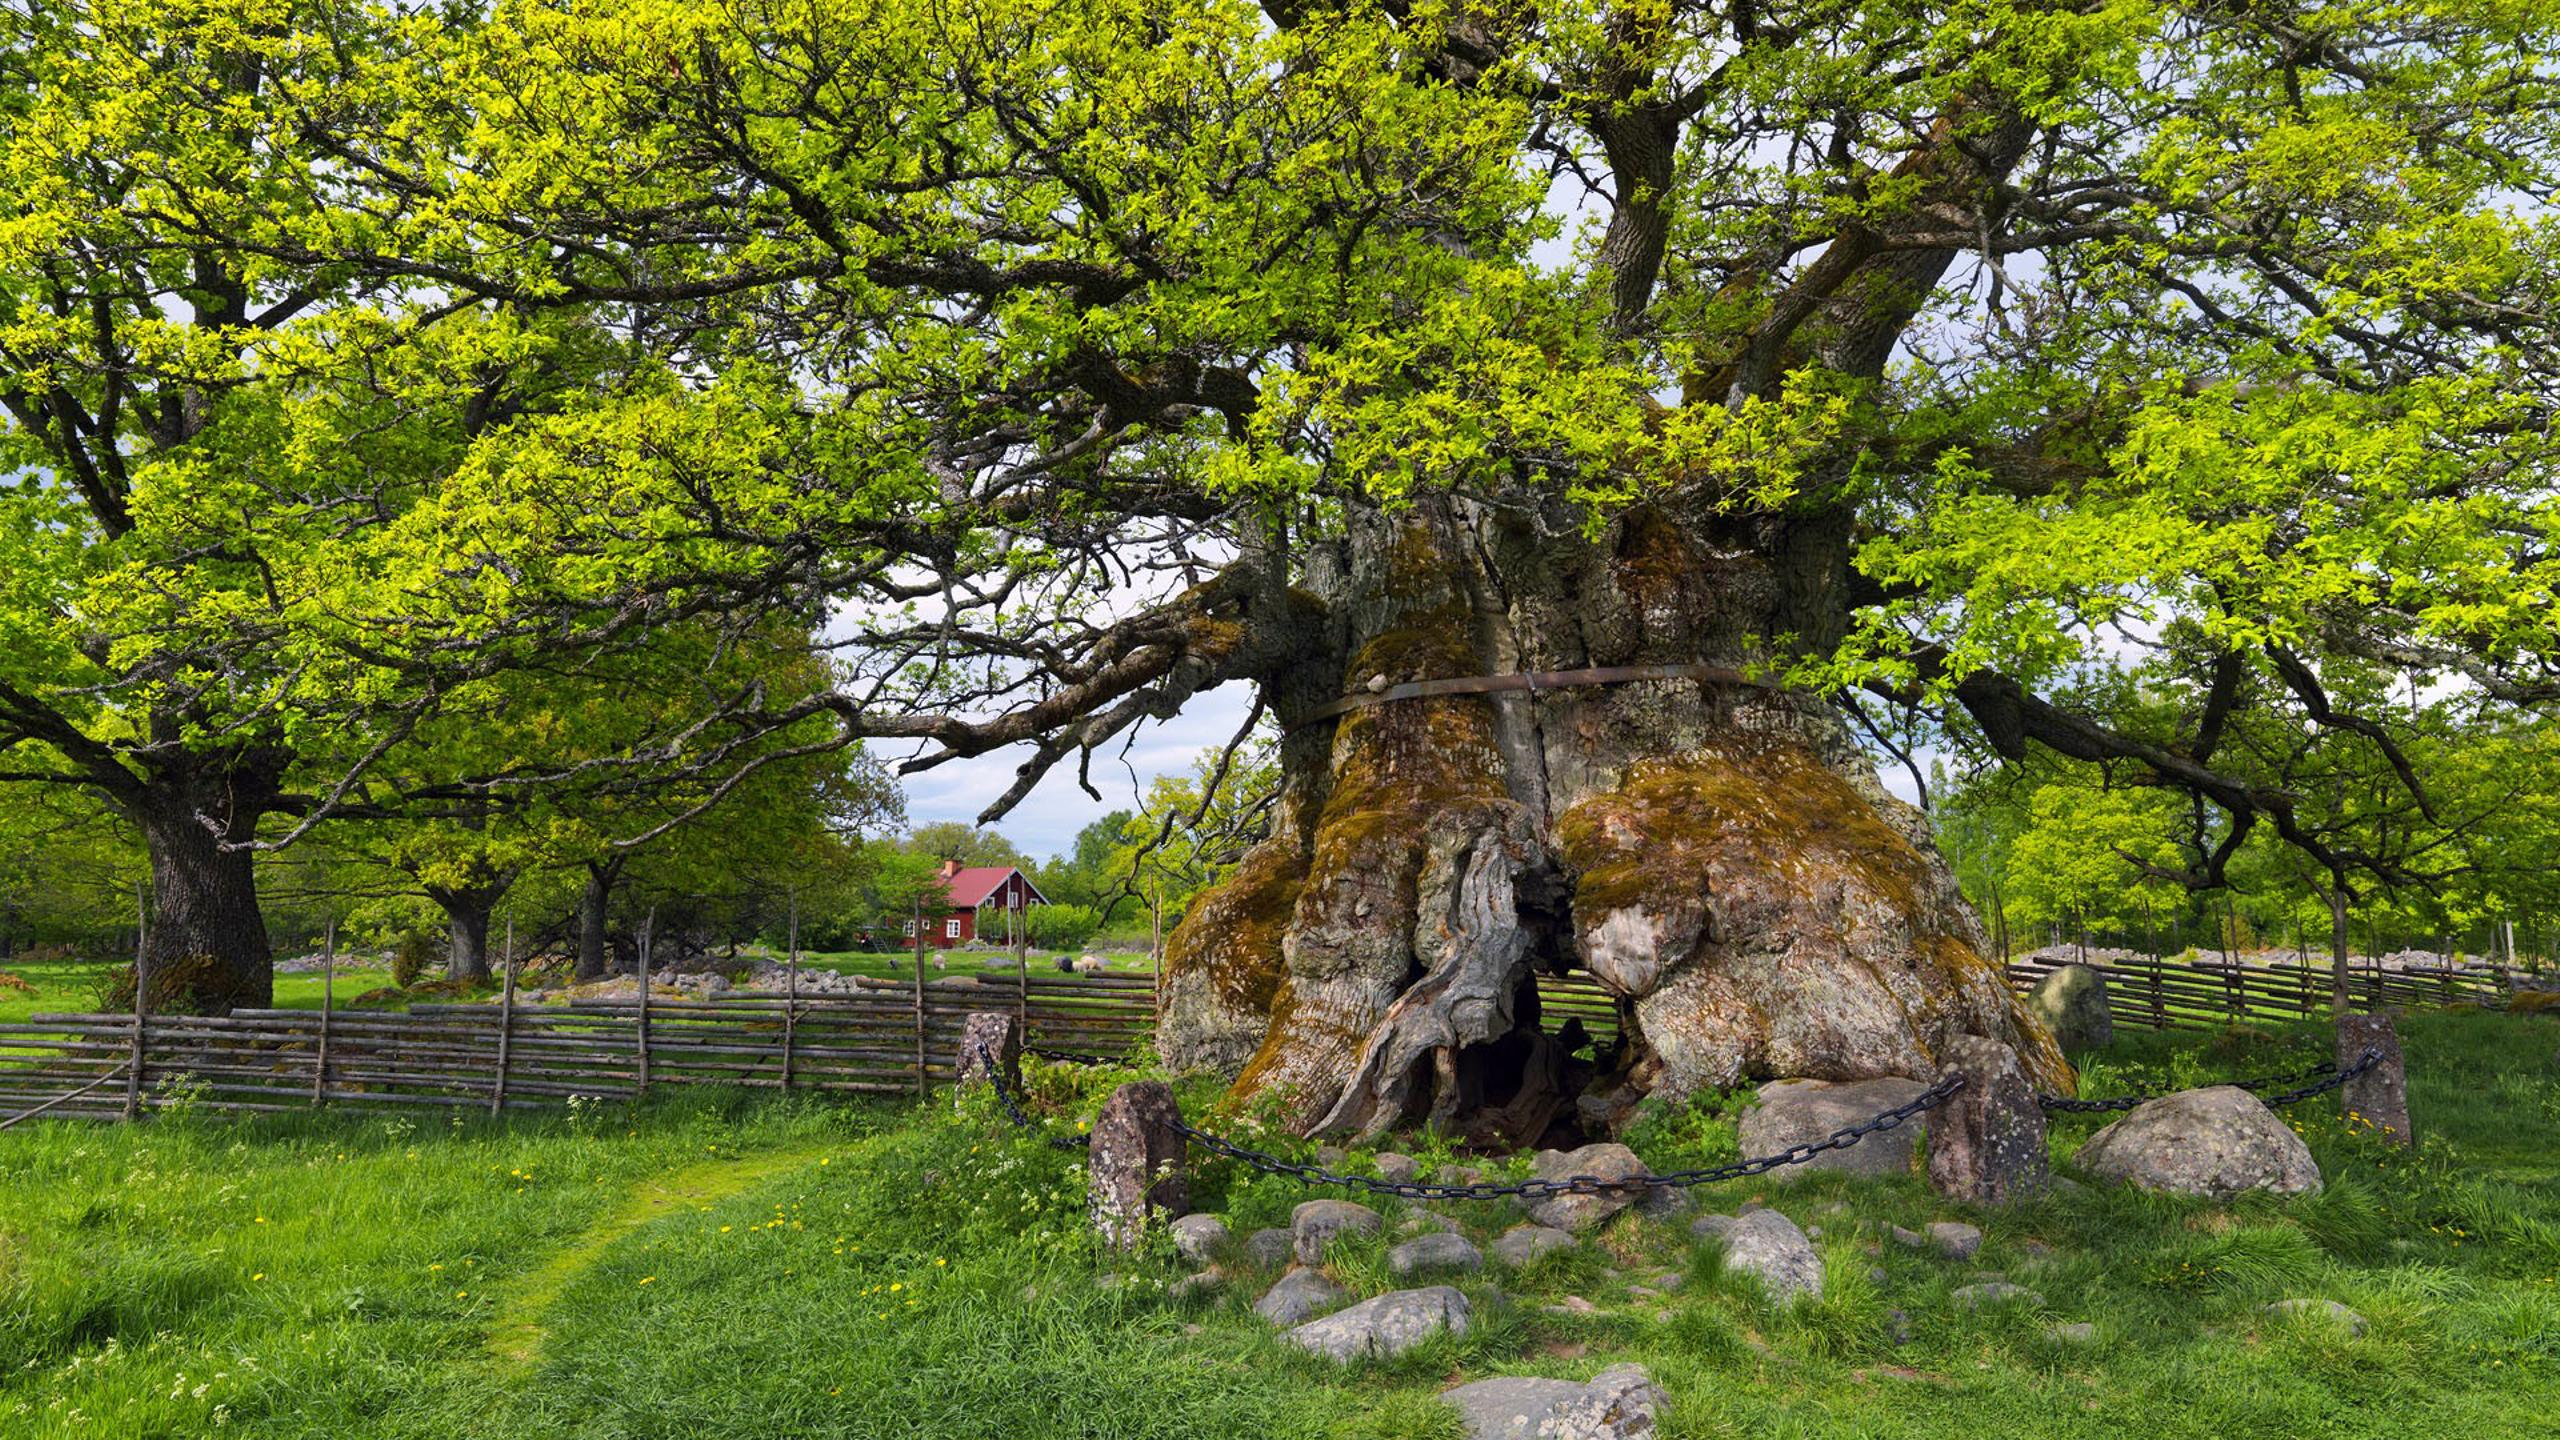 10375 Nature Tree From Sweden Wallpaper Download 2560x1440